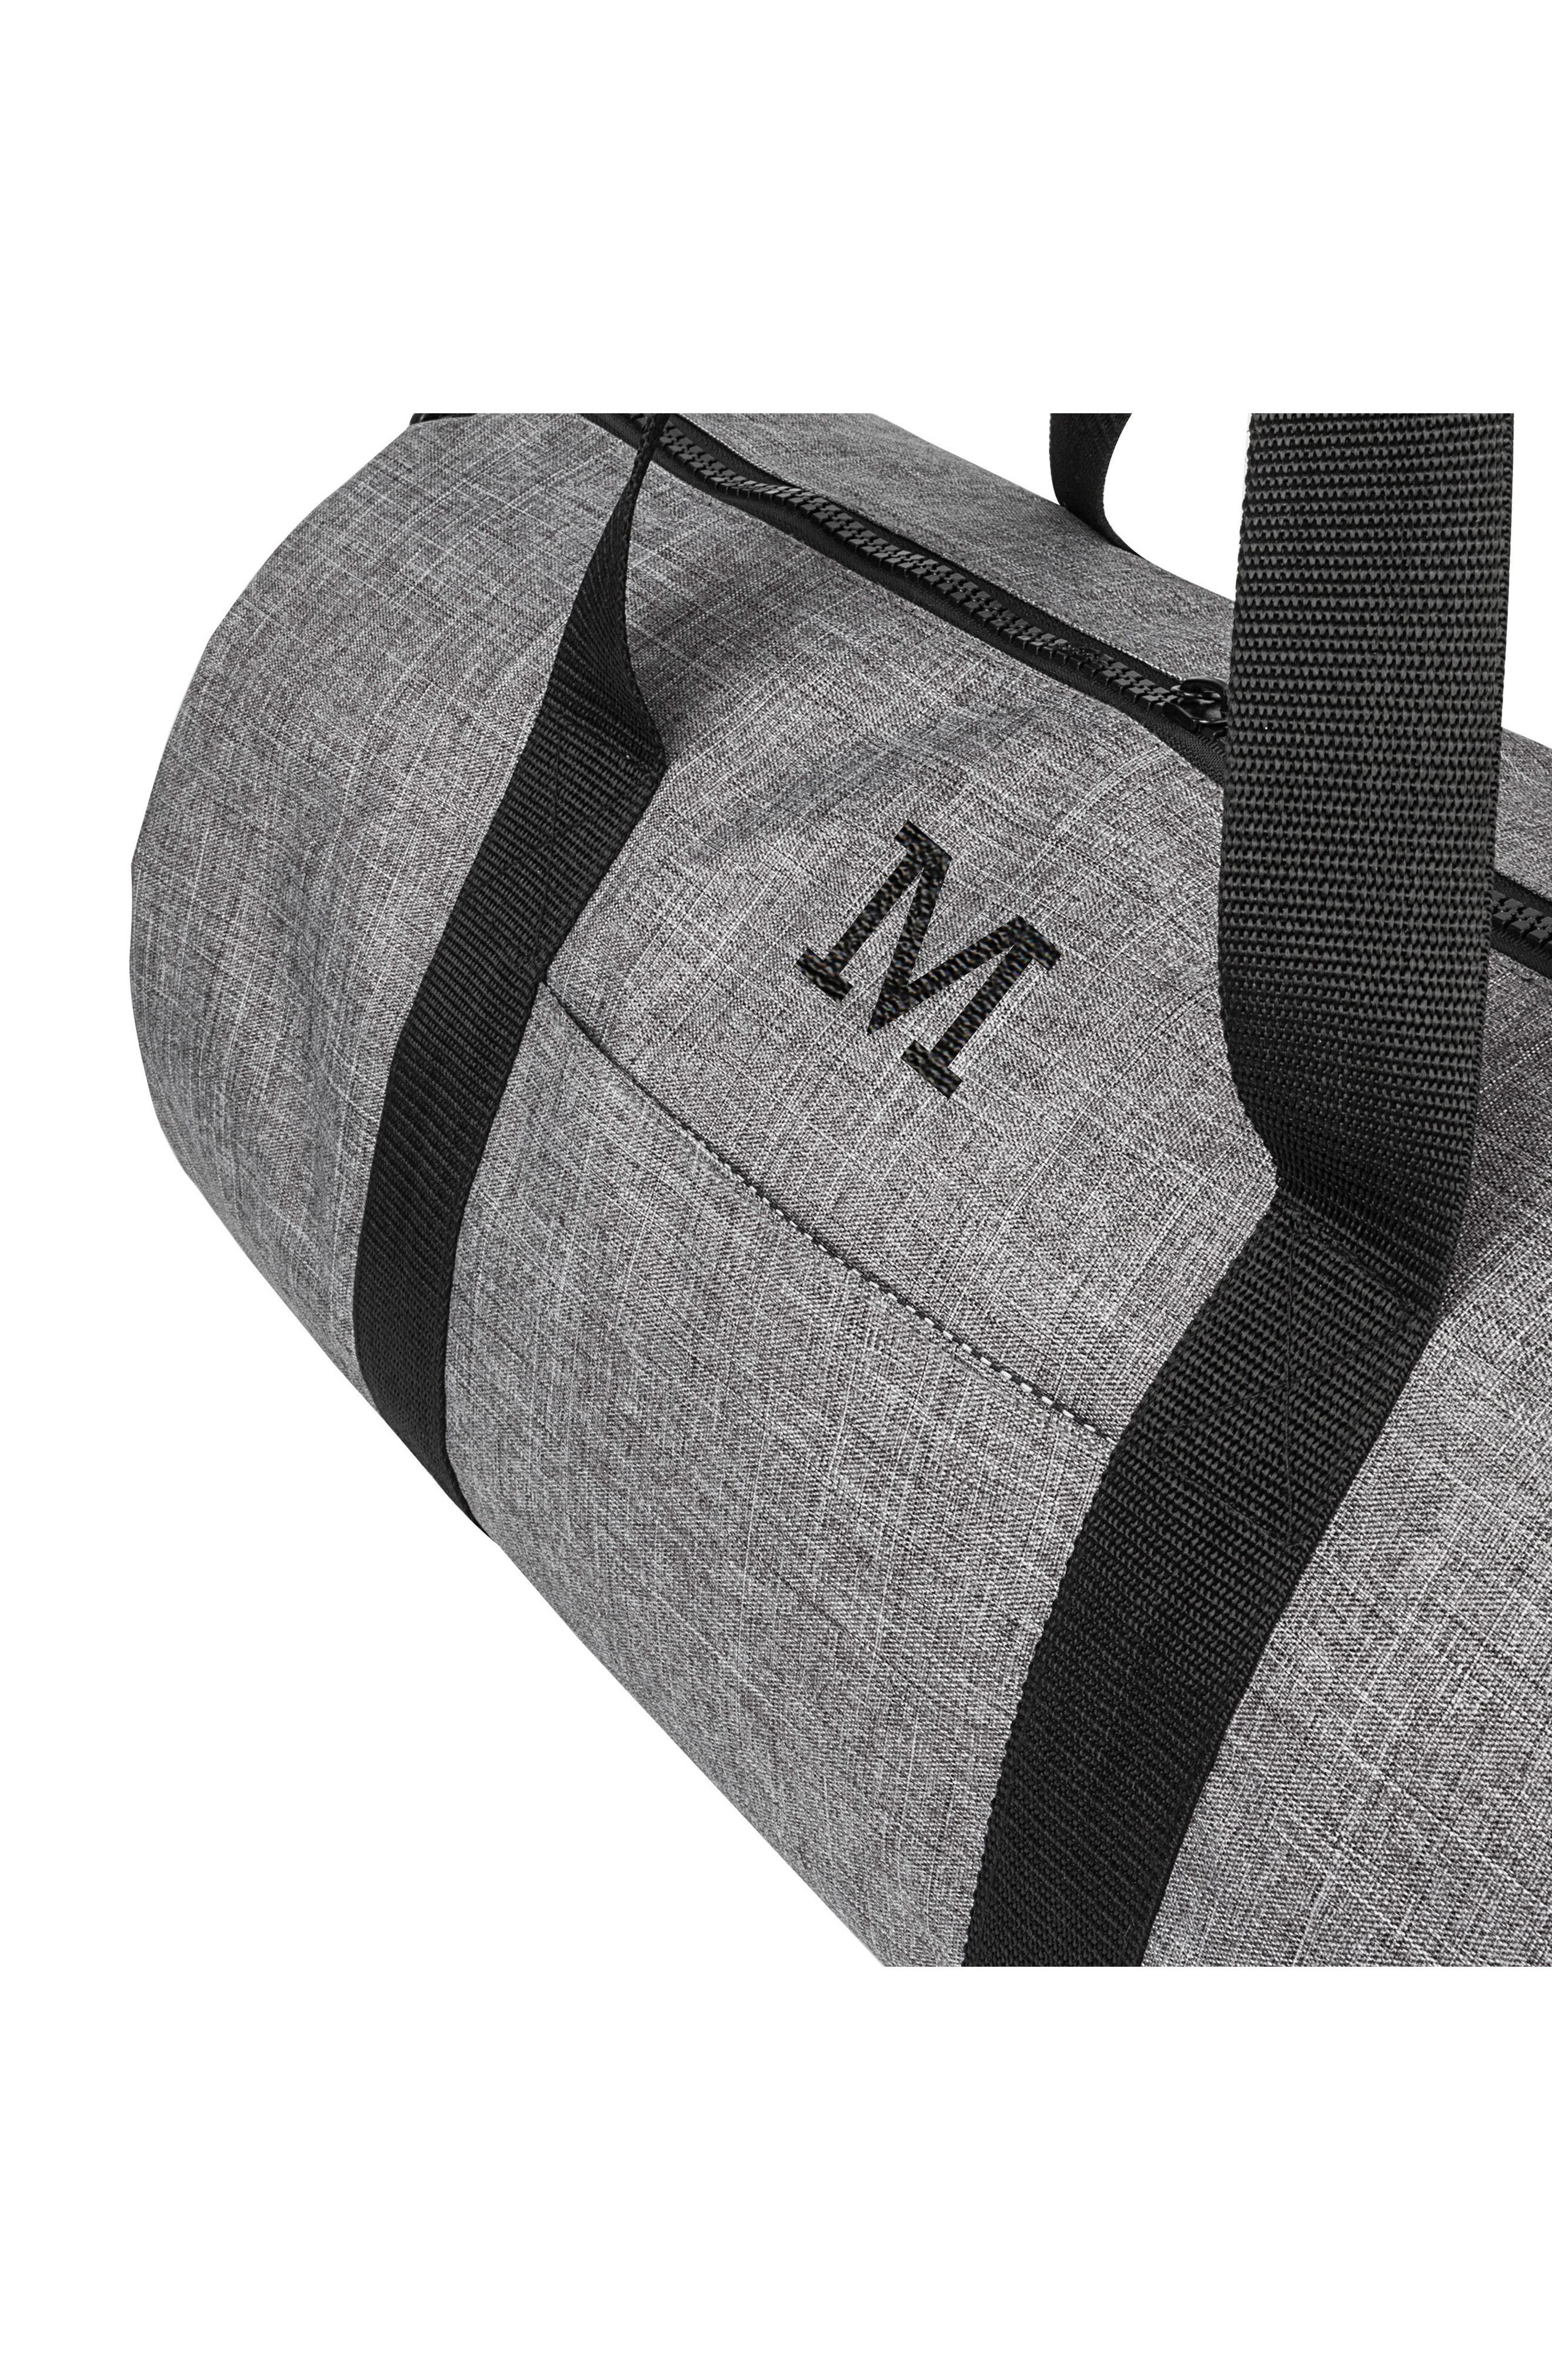 Monogram Duffel Bag,                             Alternate thumbnail 4, color,                             GREY